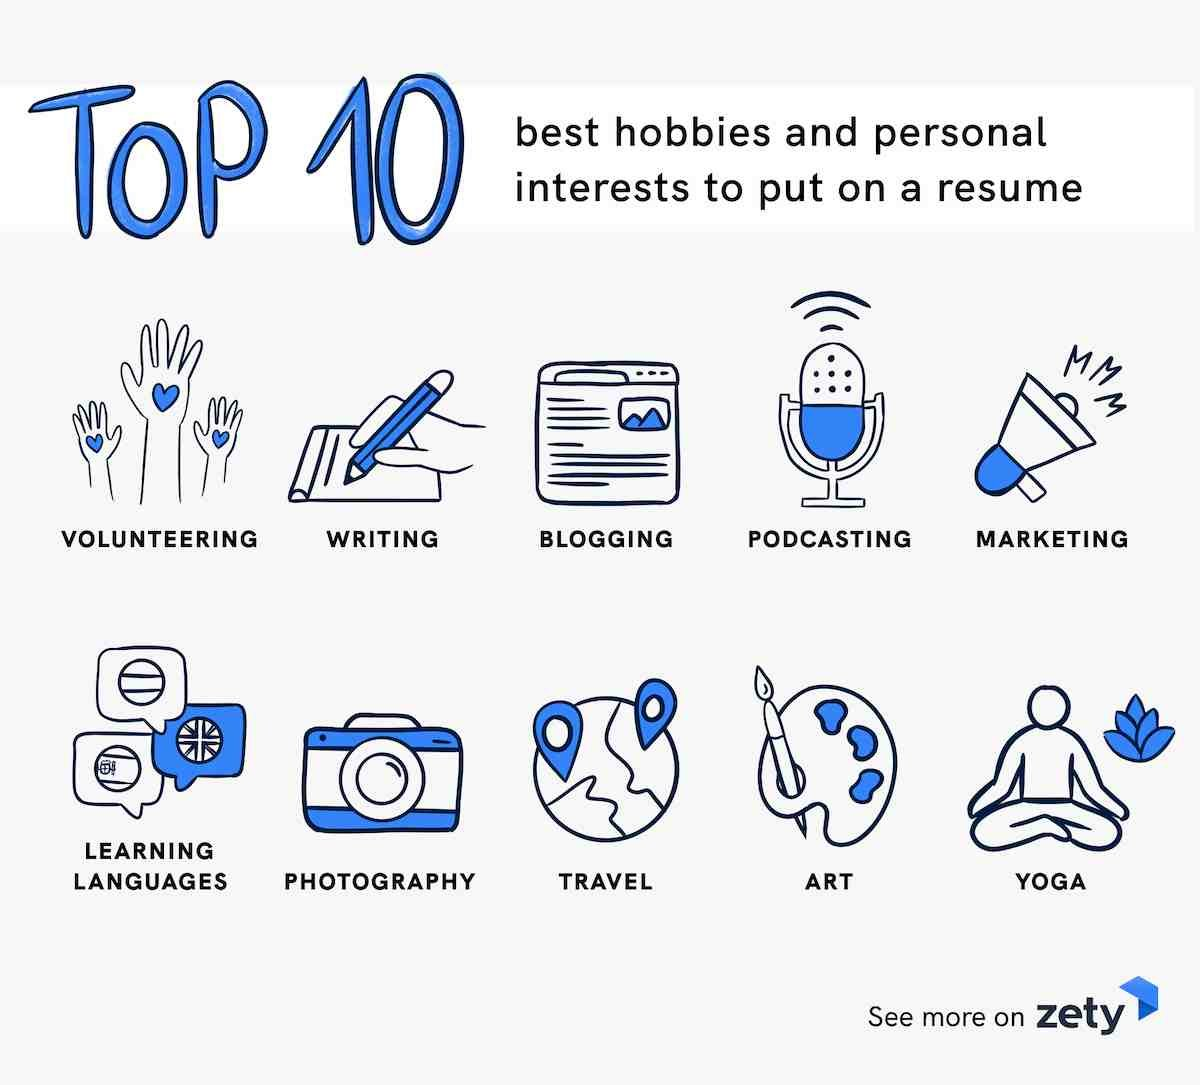 of hobbies and interests for resume cv examples interest activities top best personal to Resume Interest Activities Resume Examples